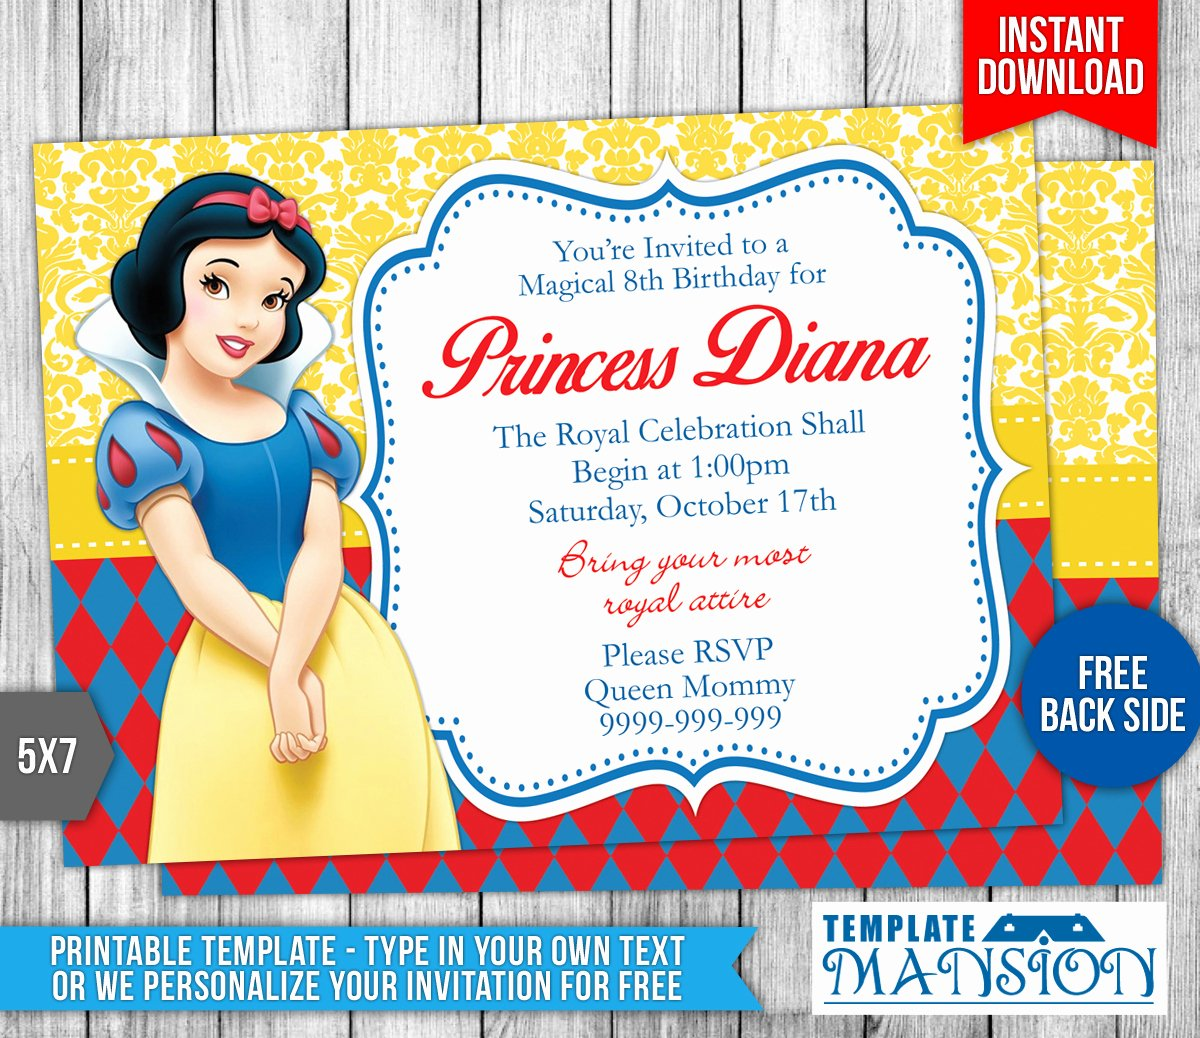 Snow White Invitation Template Awesome Snow White Birthday Invitation Template 3 by